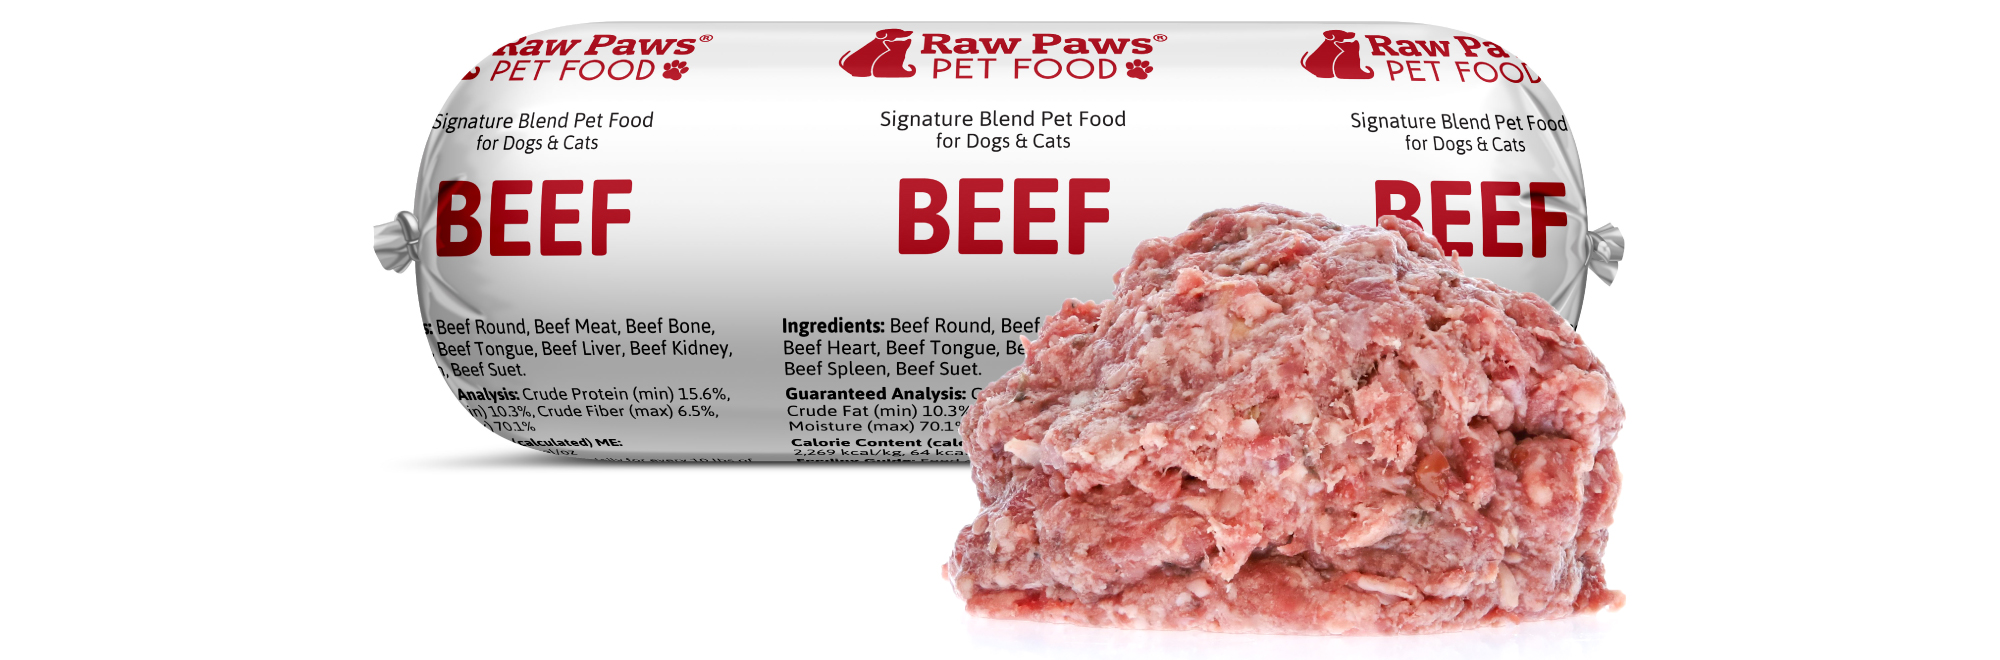 Raw Paws Signature Blend Complete Beef for Dogs & Cats, 1 lb